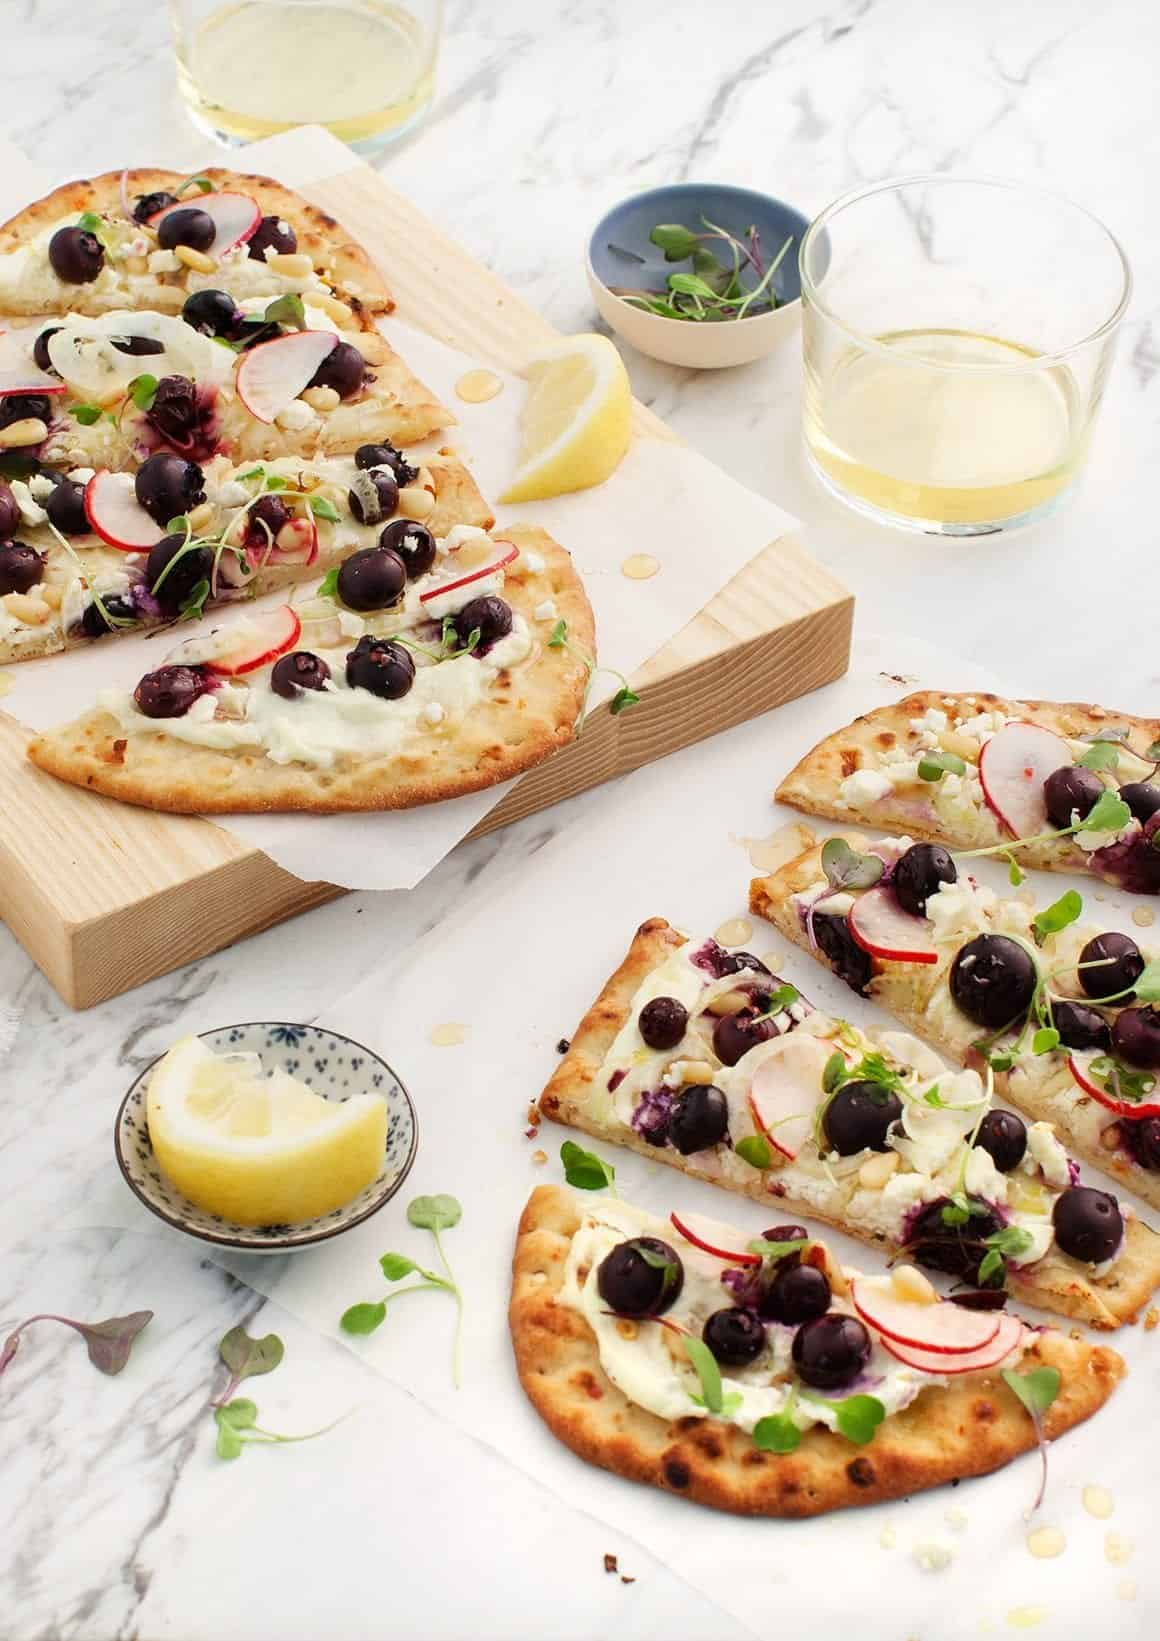 Blueberry Fennel Flatbread w/ Whipped Feta